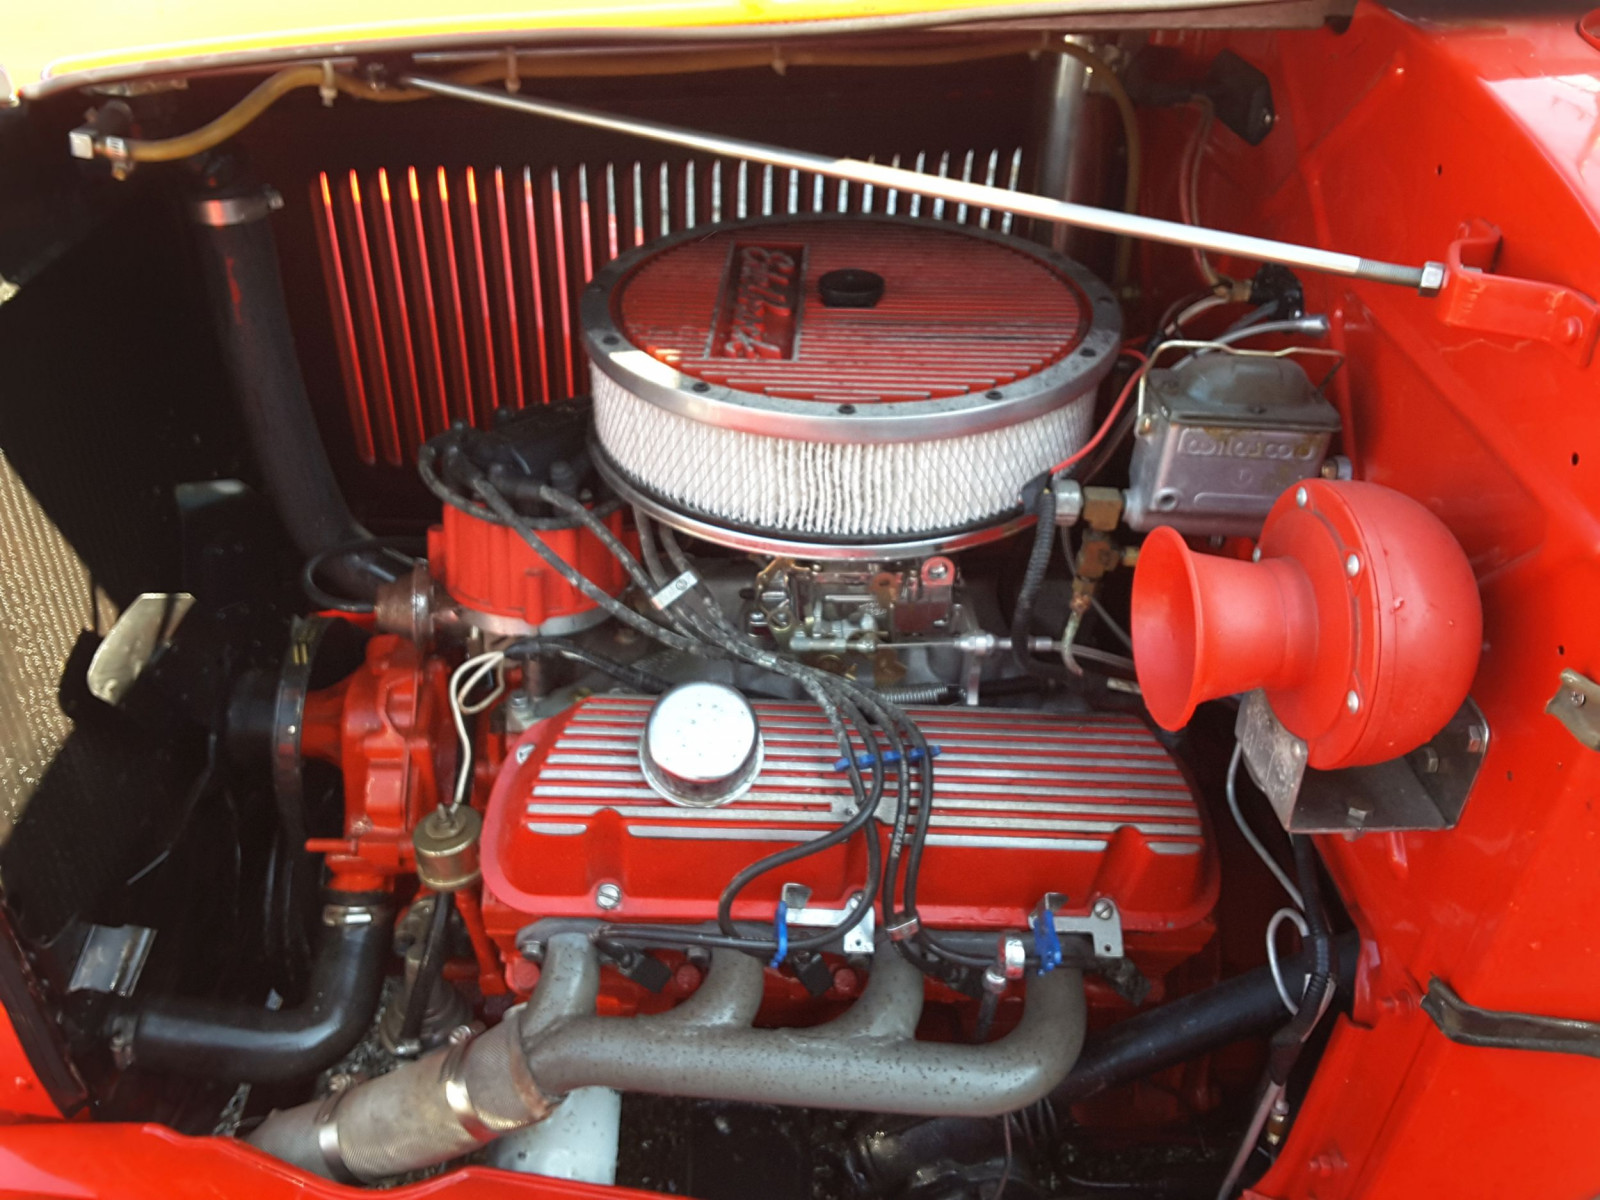 1932 DeSoto Roadster small-block Ford engine